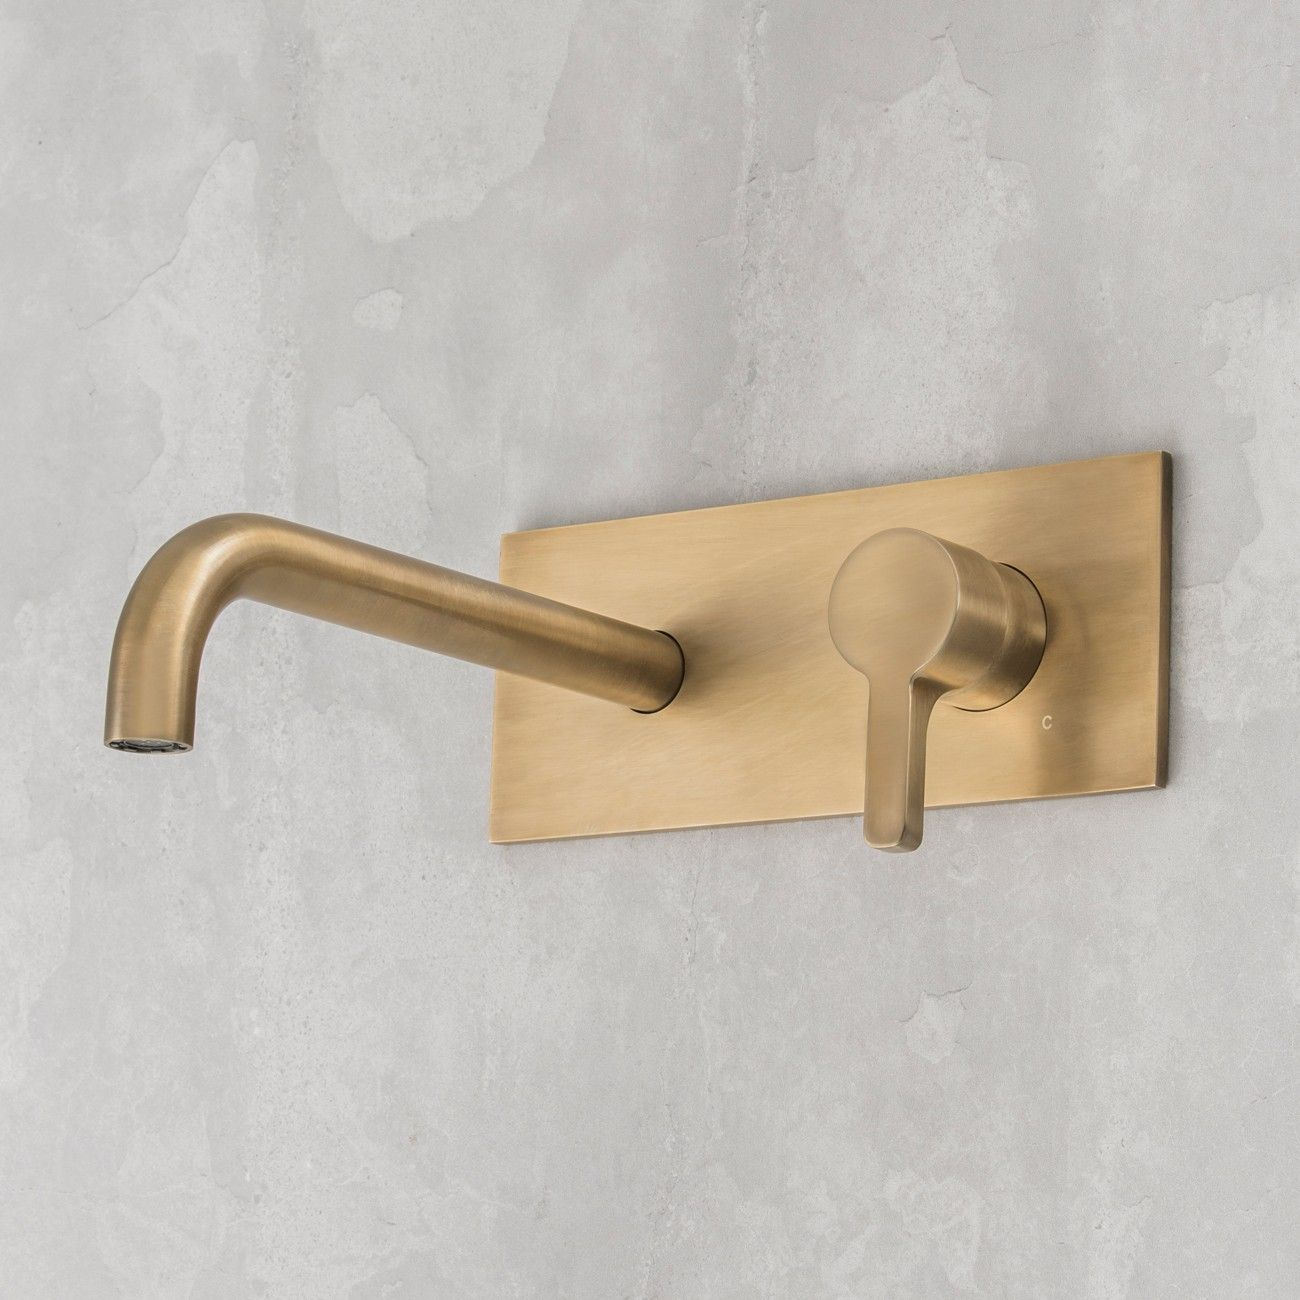 IDEE ROBINETTERIE (Rogerseller Arq Wall Mixer U0026 250mm Outlet Burnished  Brass   Rogerseller )